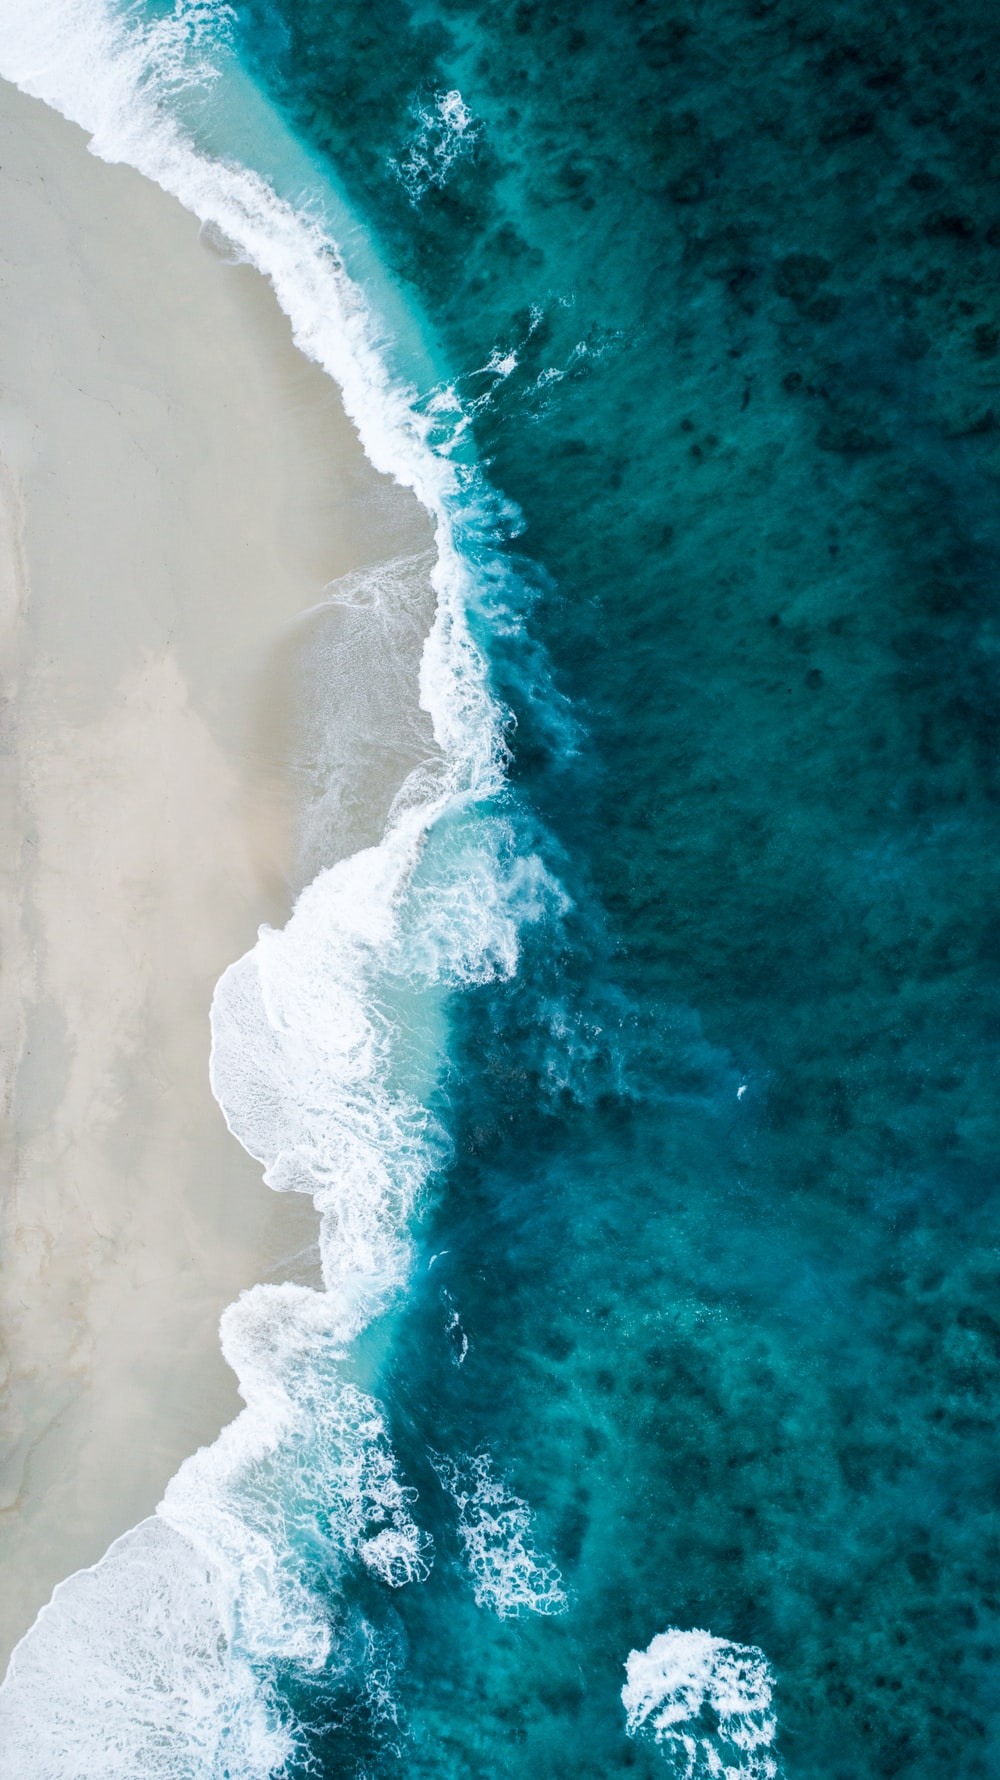 Ocean Wallpapers Free Hd Download 500 Hq Unsplash